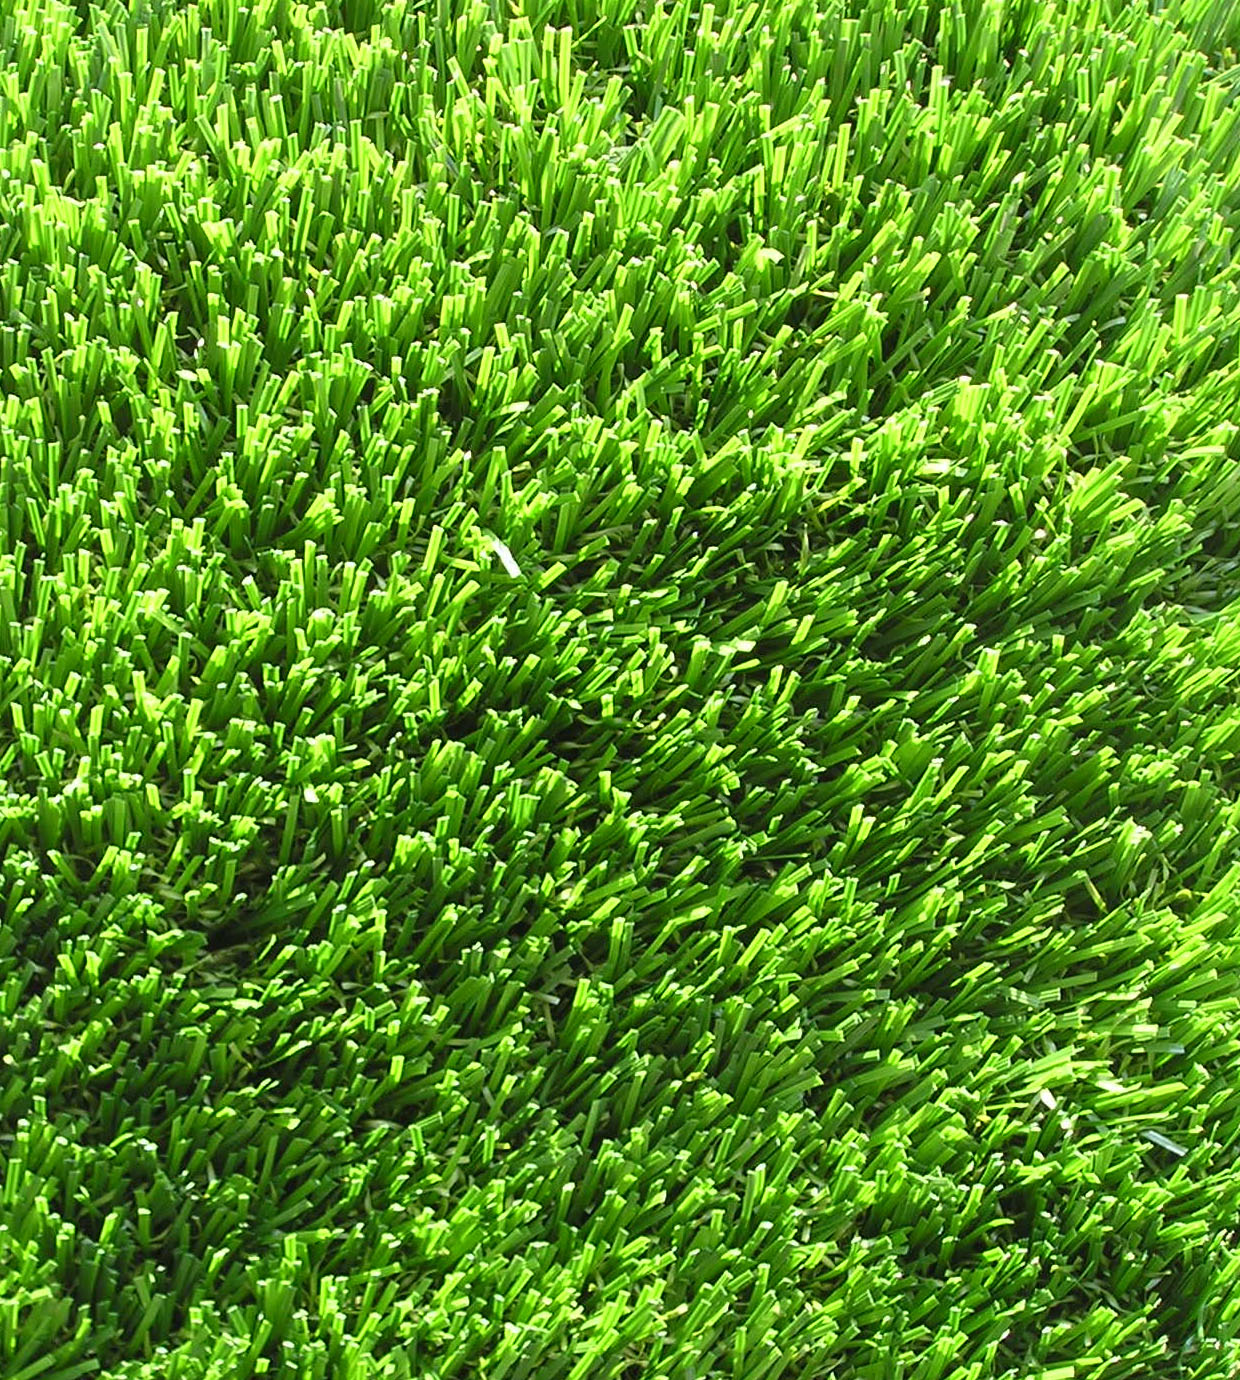 Polyethylene Monofilament Texturized Polypropylene Thatch Synthetic Grass 60 oz Face Weight